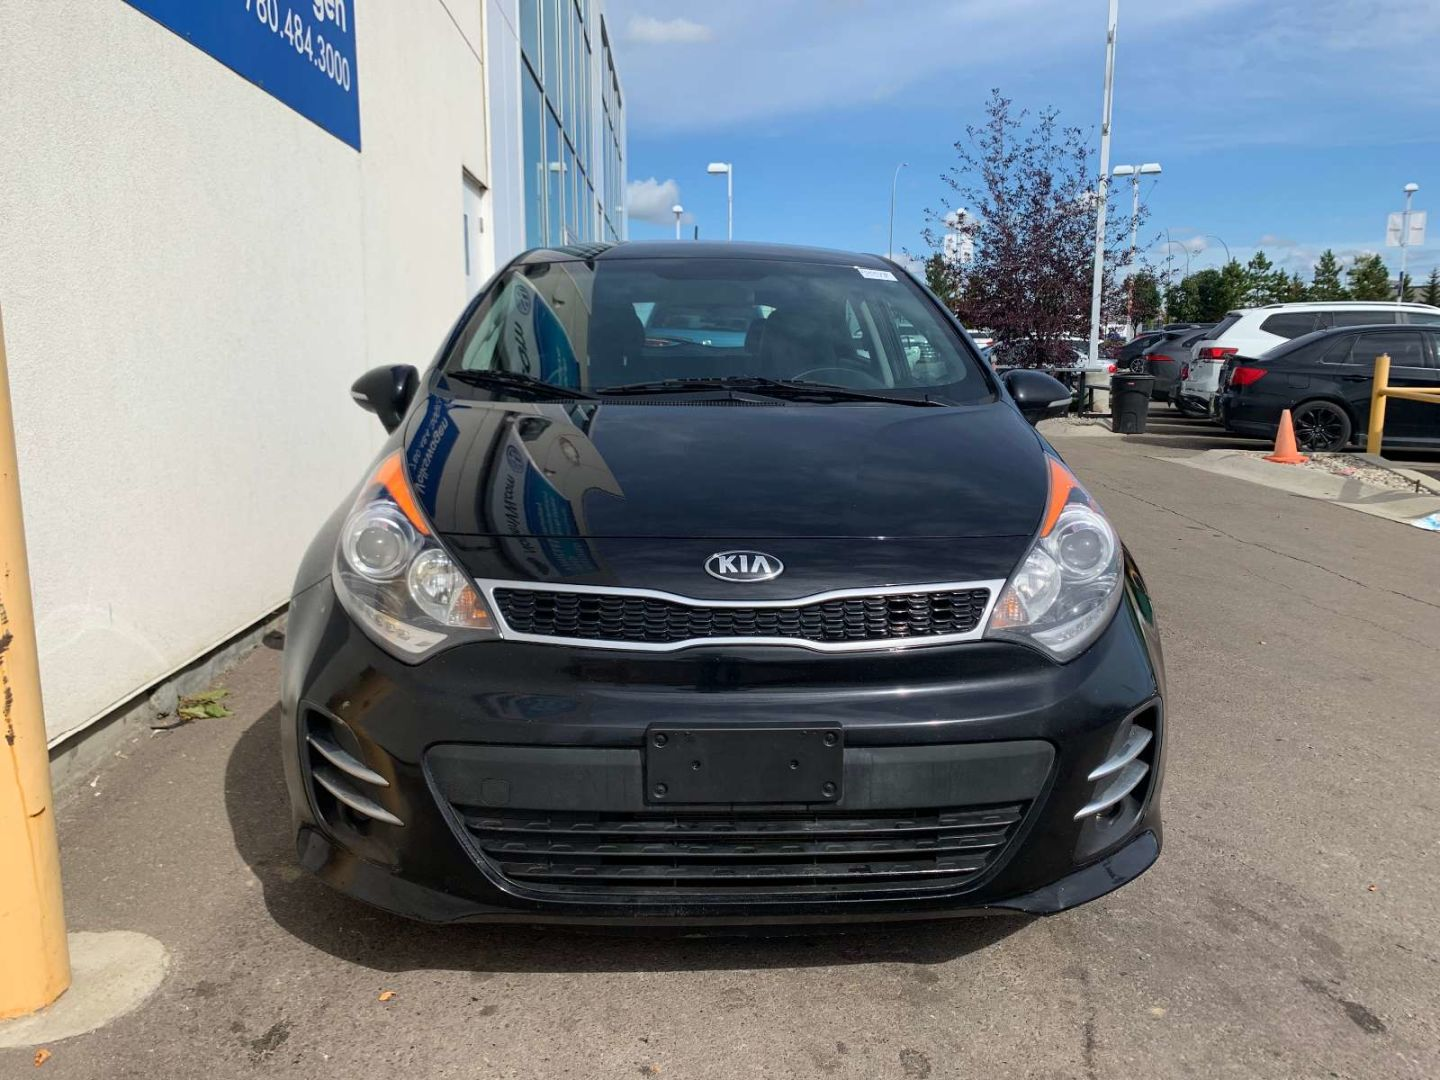 2016 Kia Rio SX for sale in Edmonton, Alberta